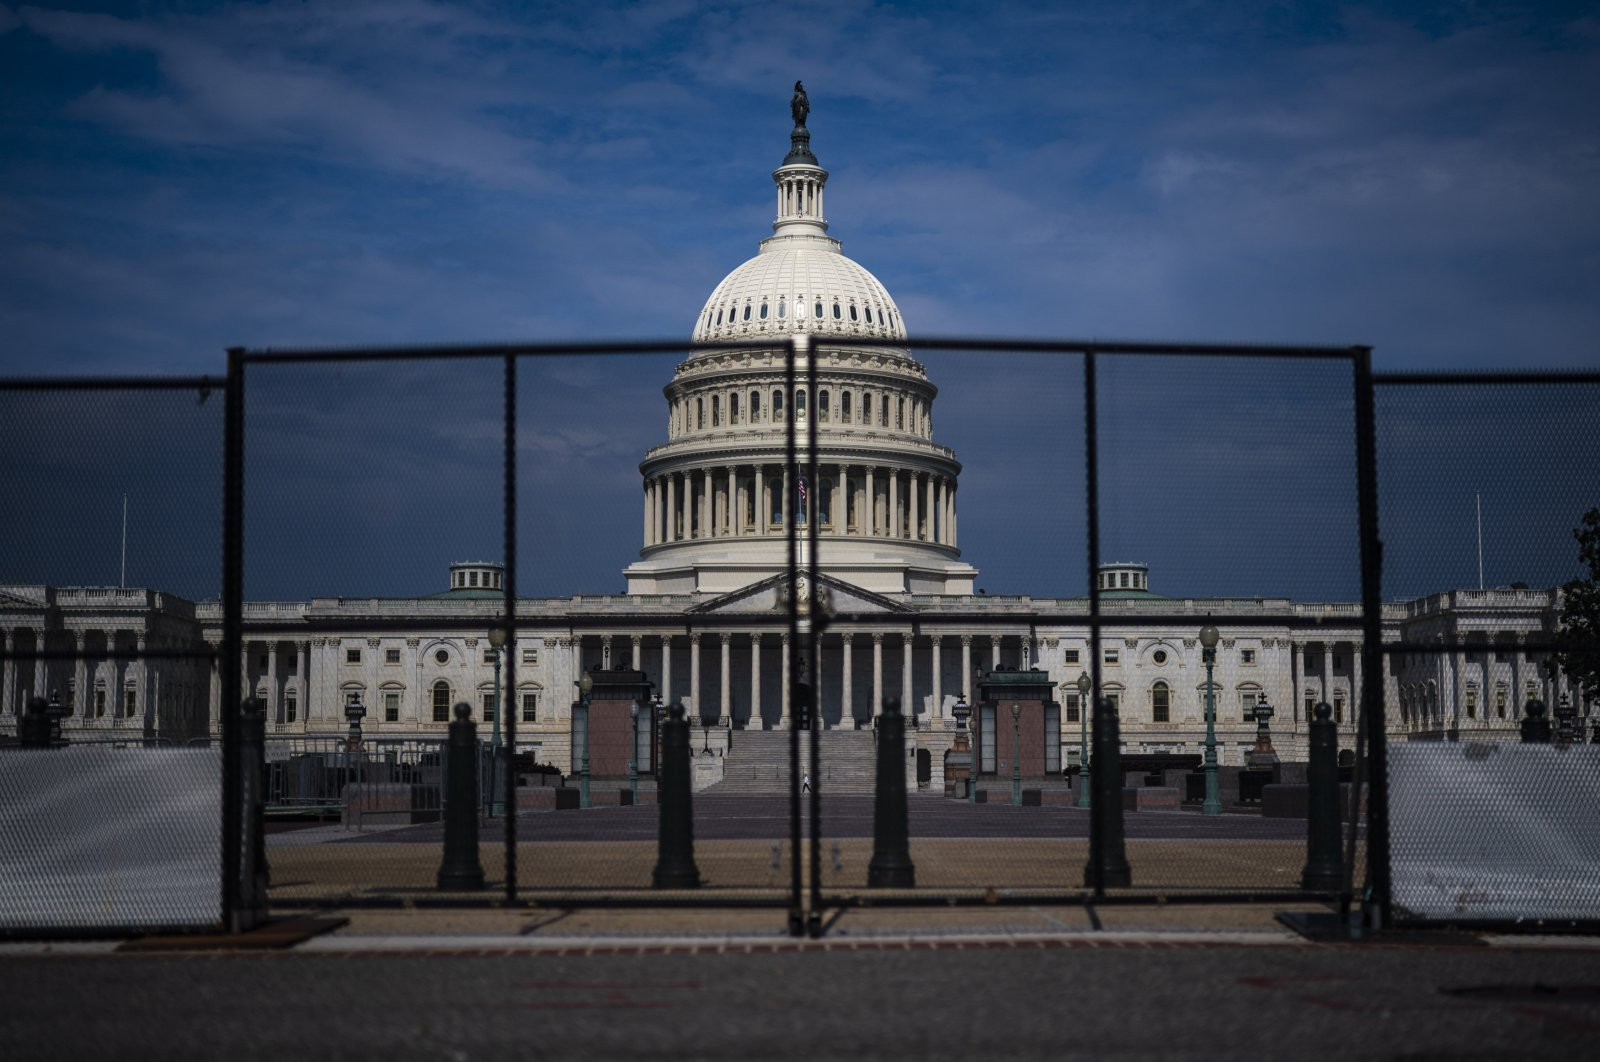 Fencing, that was erected after the Jan. 6 riot, is seen surrounding the Capitol building on Capitol Hill, in Washington, D.C., U.S., July 9, 2021. (Photo by Getty Images)